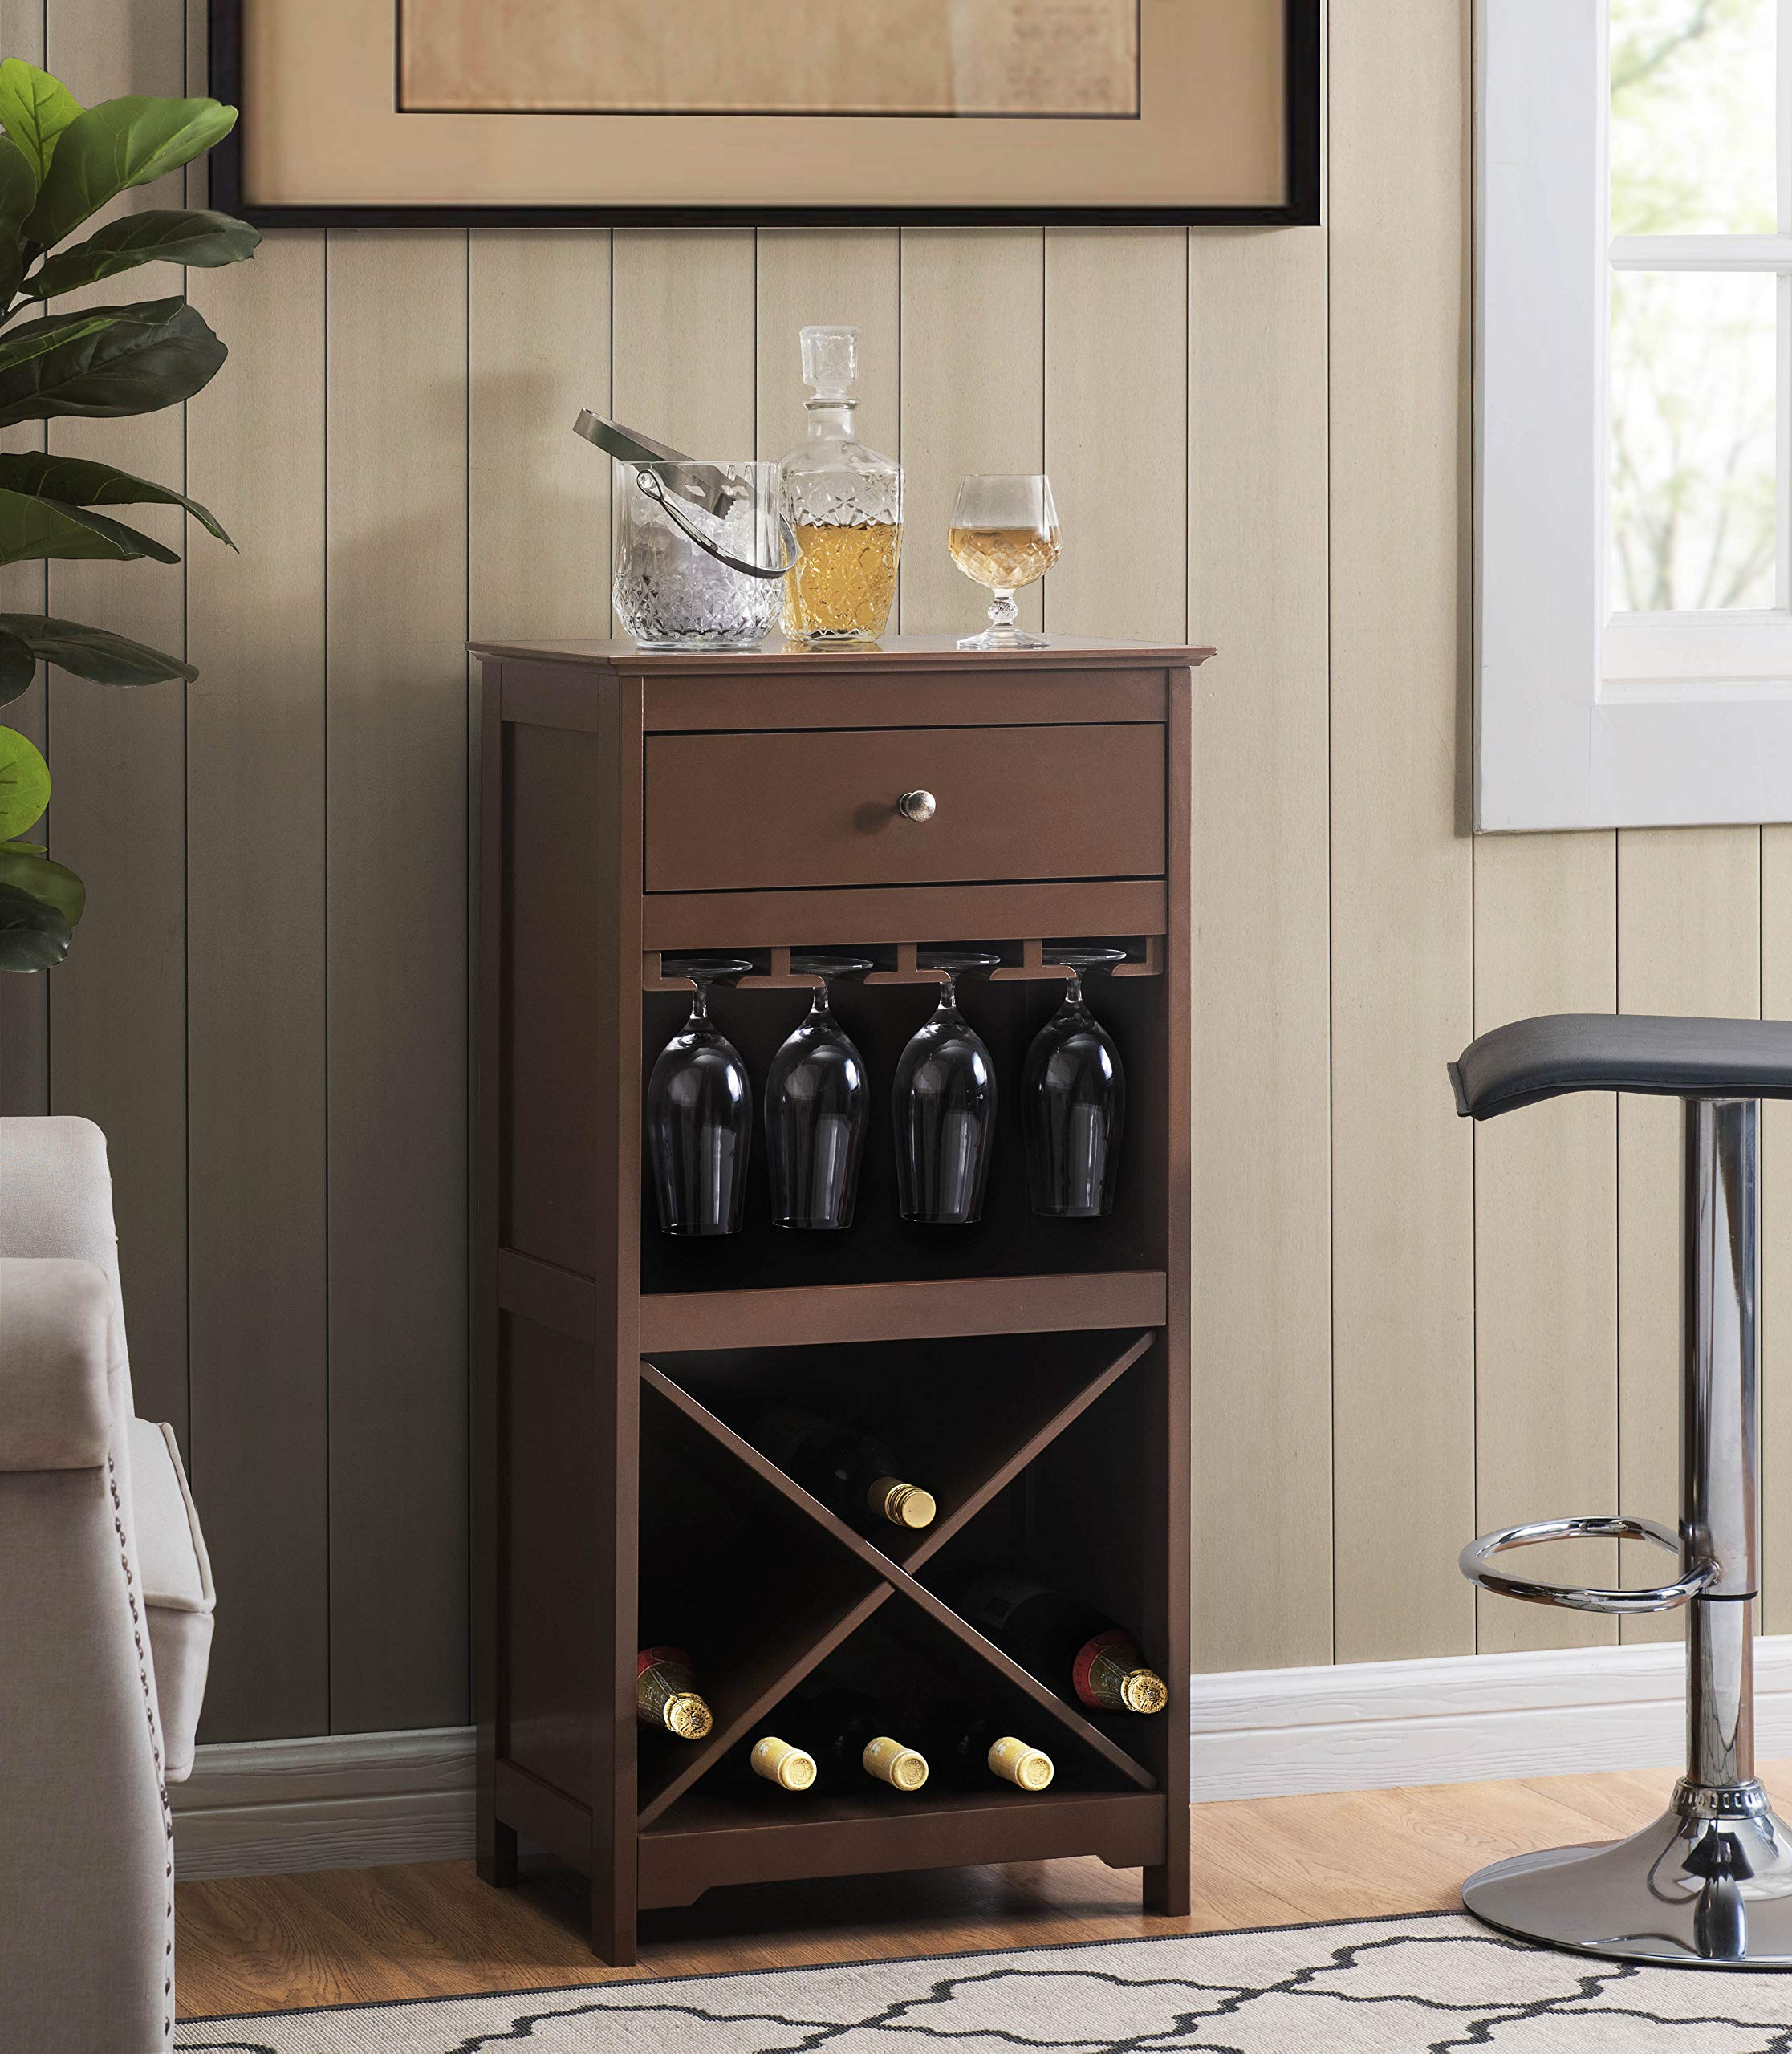 2L Lifestyle Paxton Cabinet, Brown by 2L Lifestyle